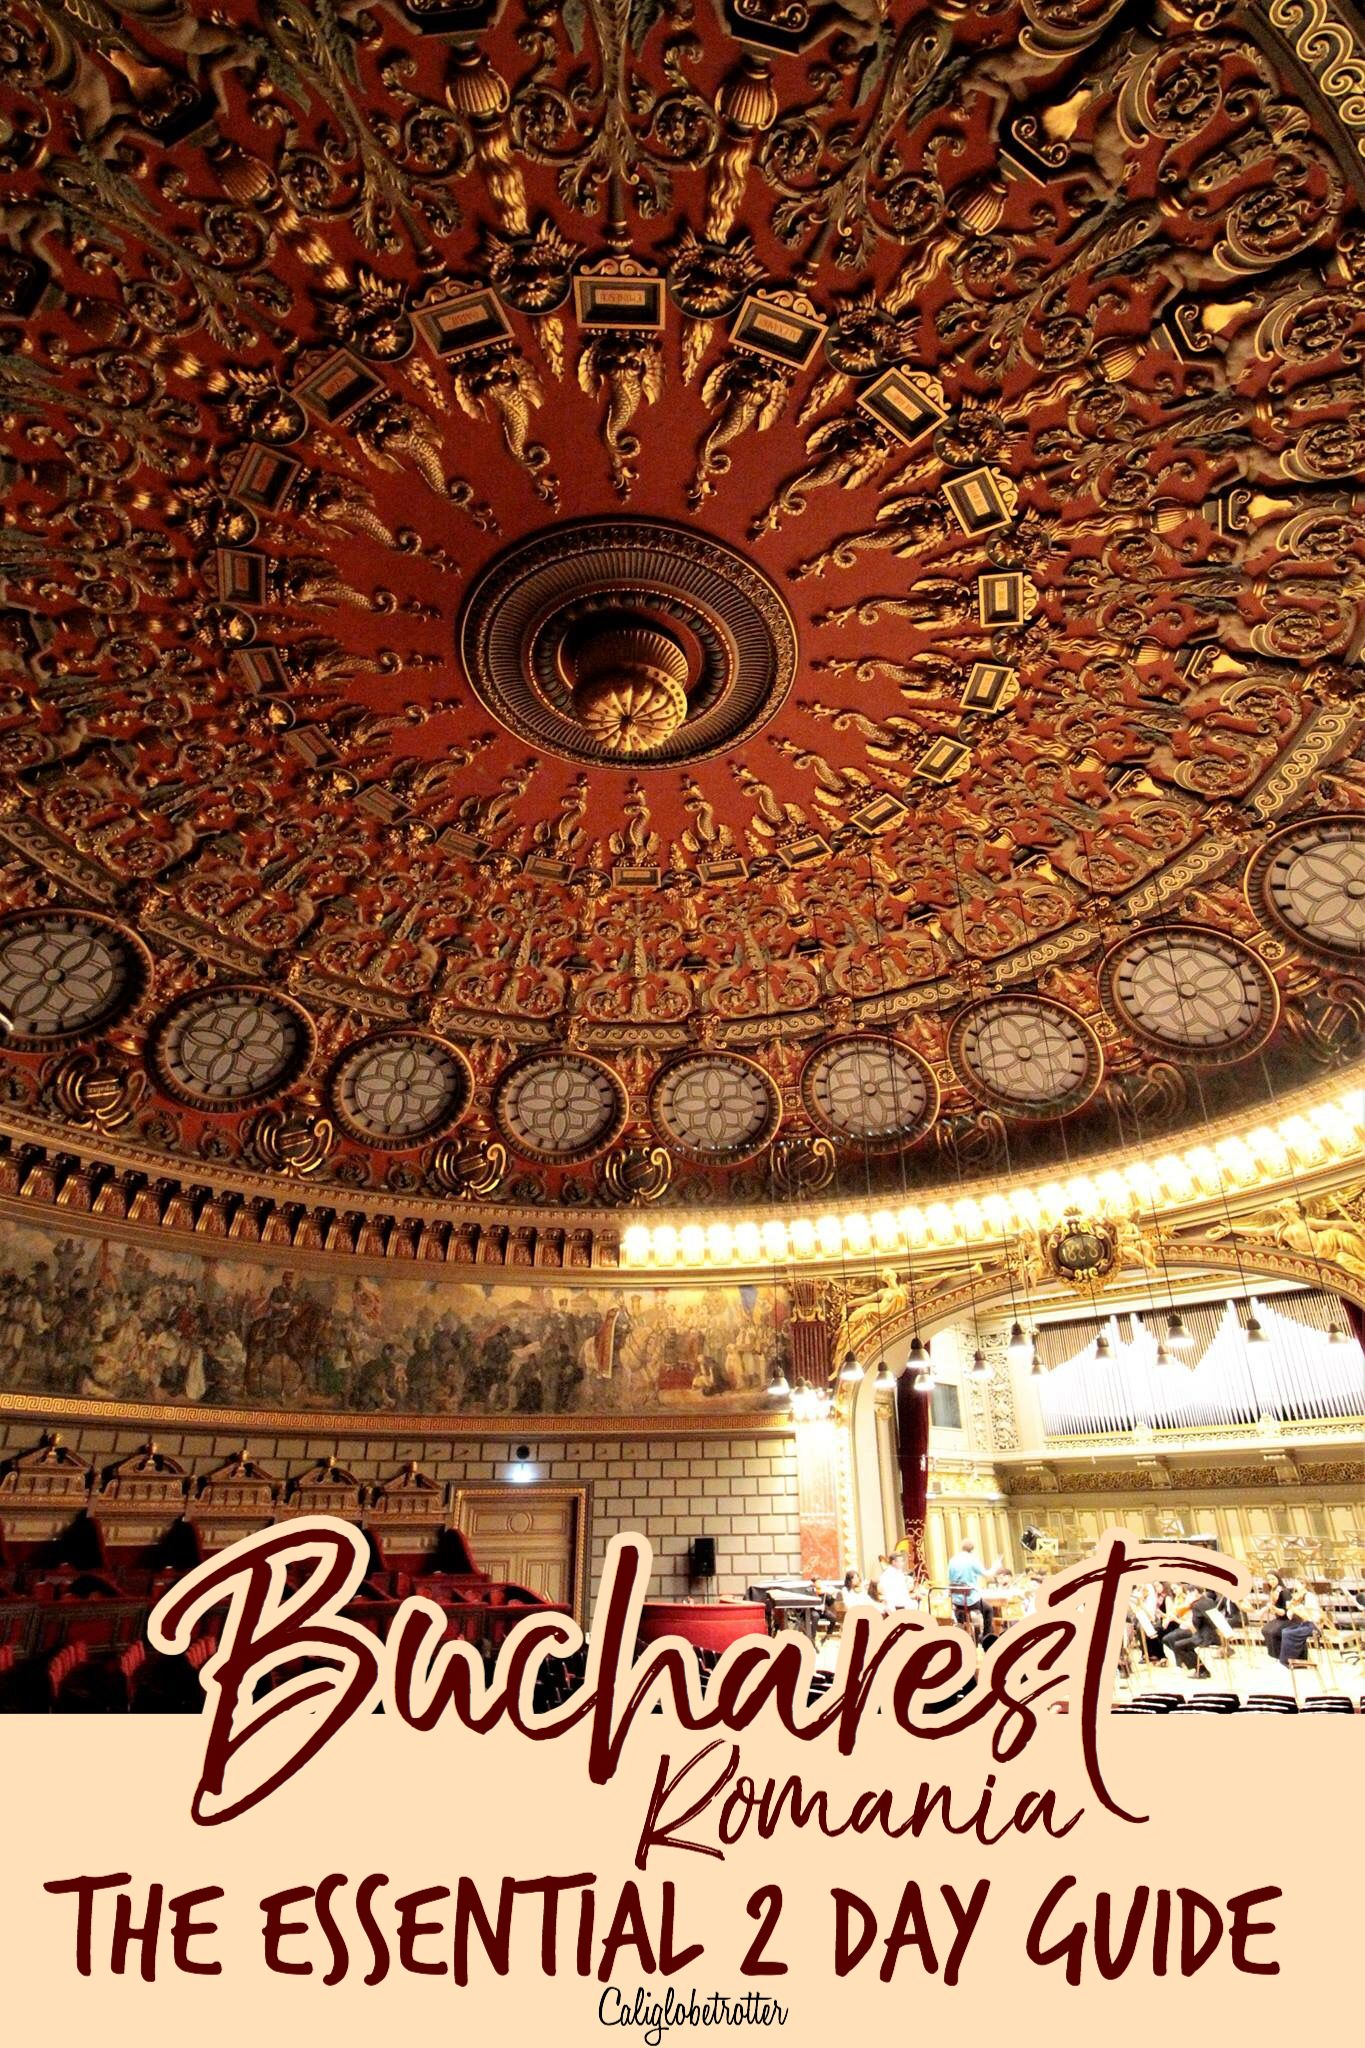 Bucharest: The Essential 2 Day Guide